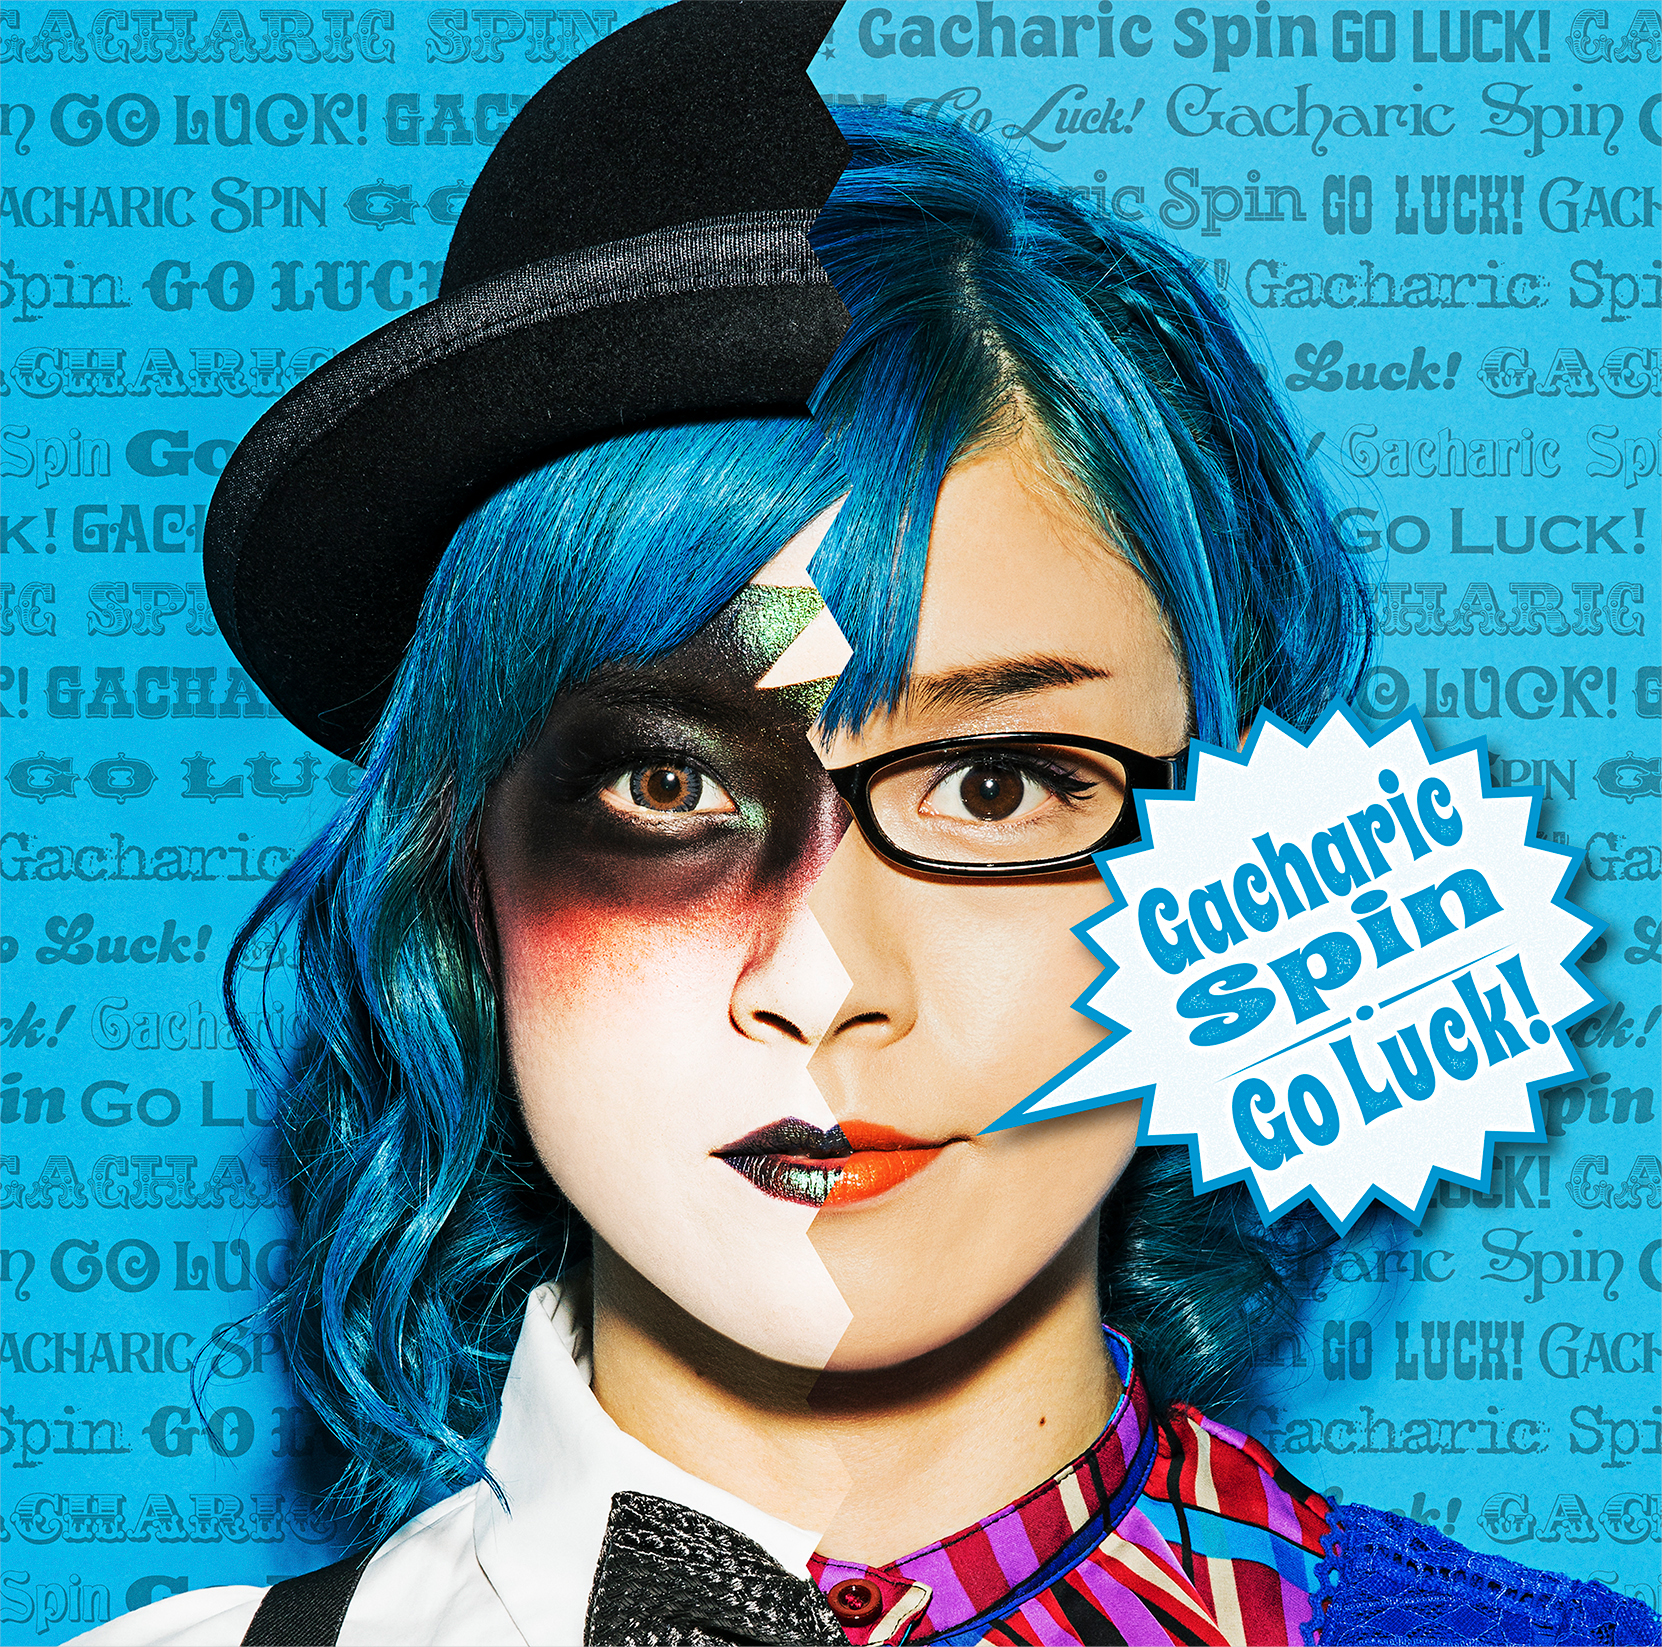 Gacharic Spin Cover Mini Album『Go Luck!』Type-HANA